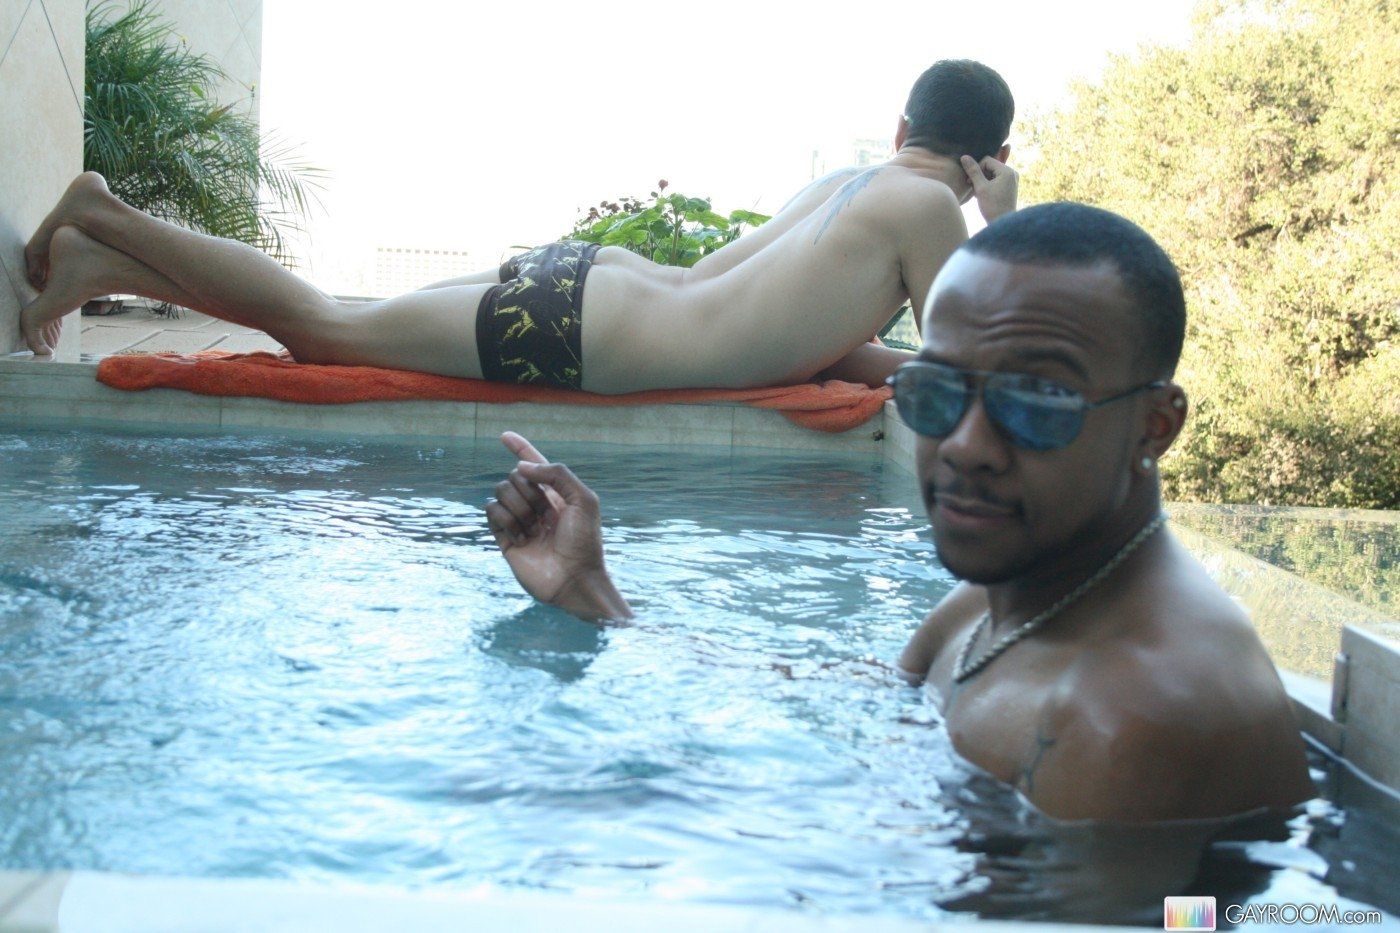 Interracial gays in the swimming pool